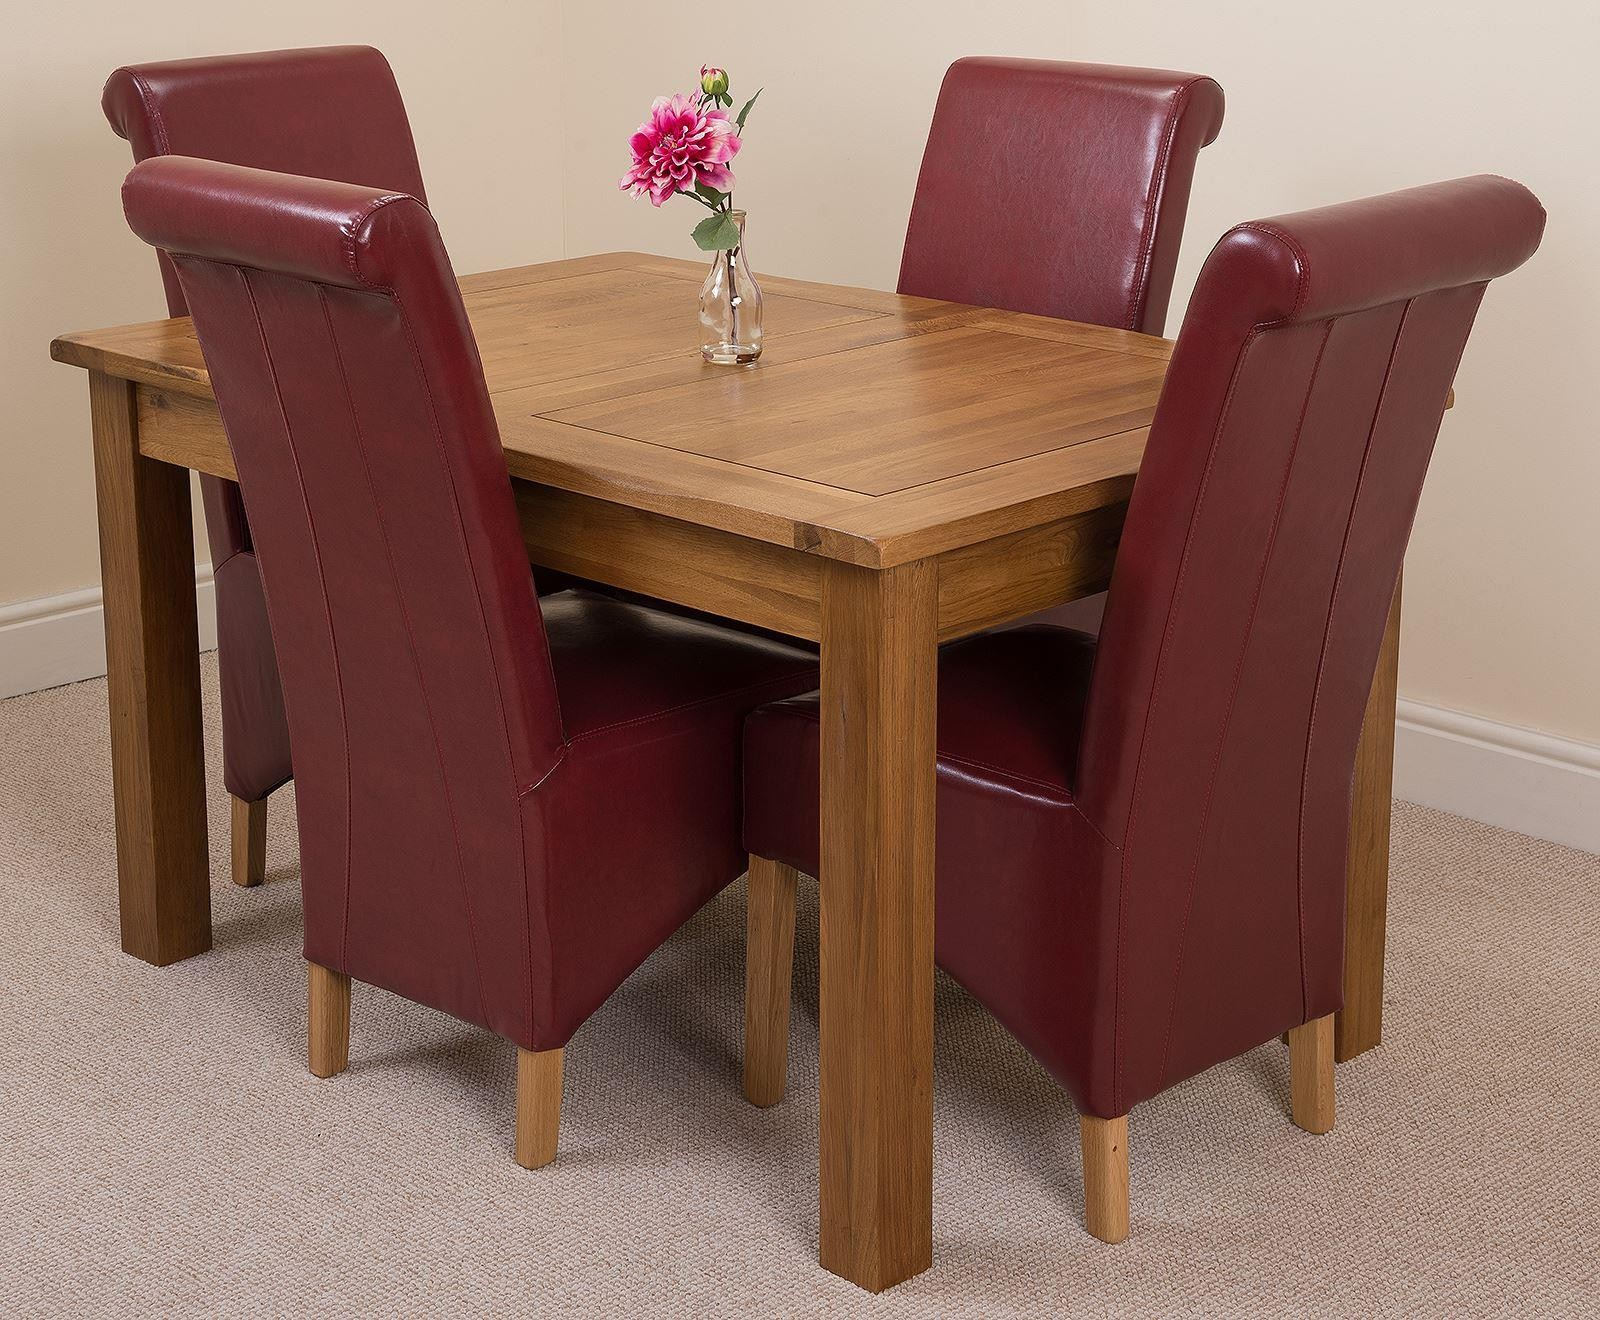 Cotswold Rustic Solid Oak 132cm-198cm Extending Farmhouse Dining Table with 4 Montana Dining Chairs [Burgundy Leather]